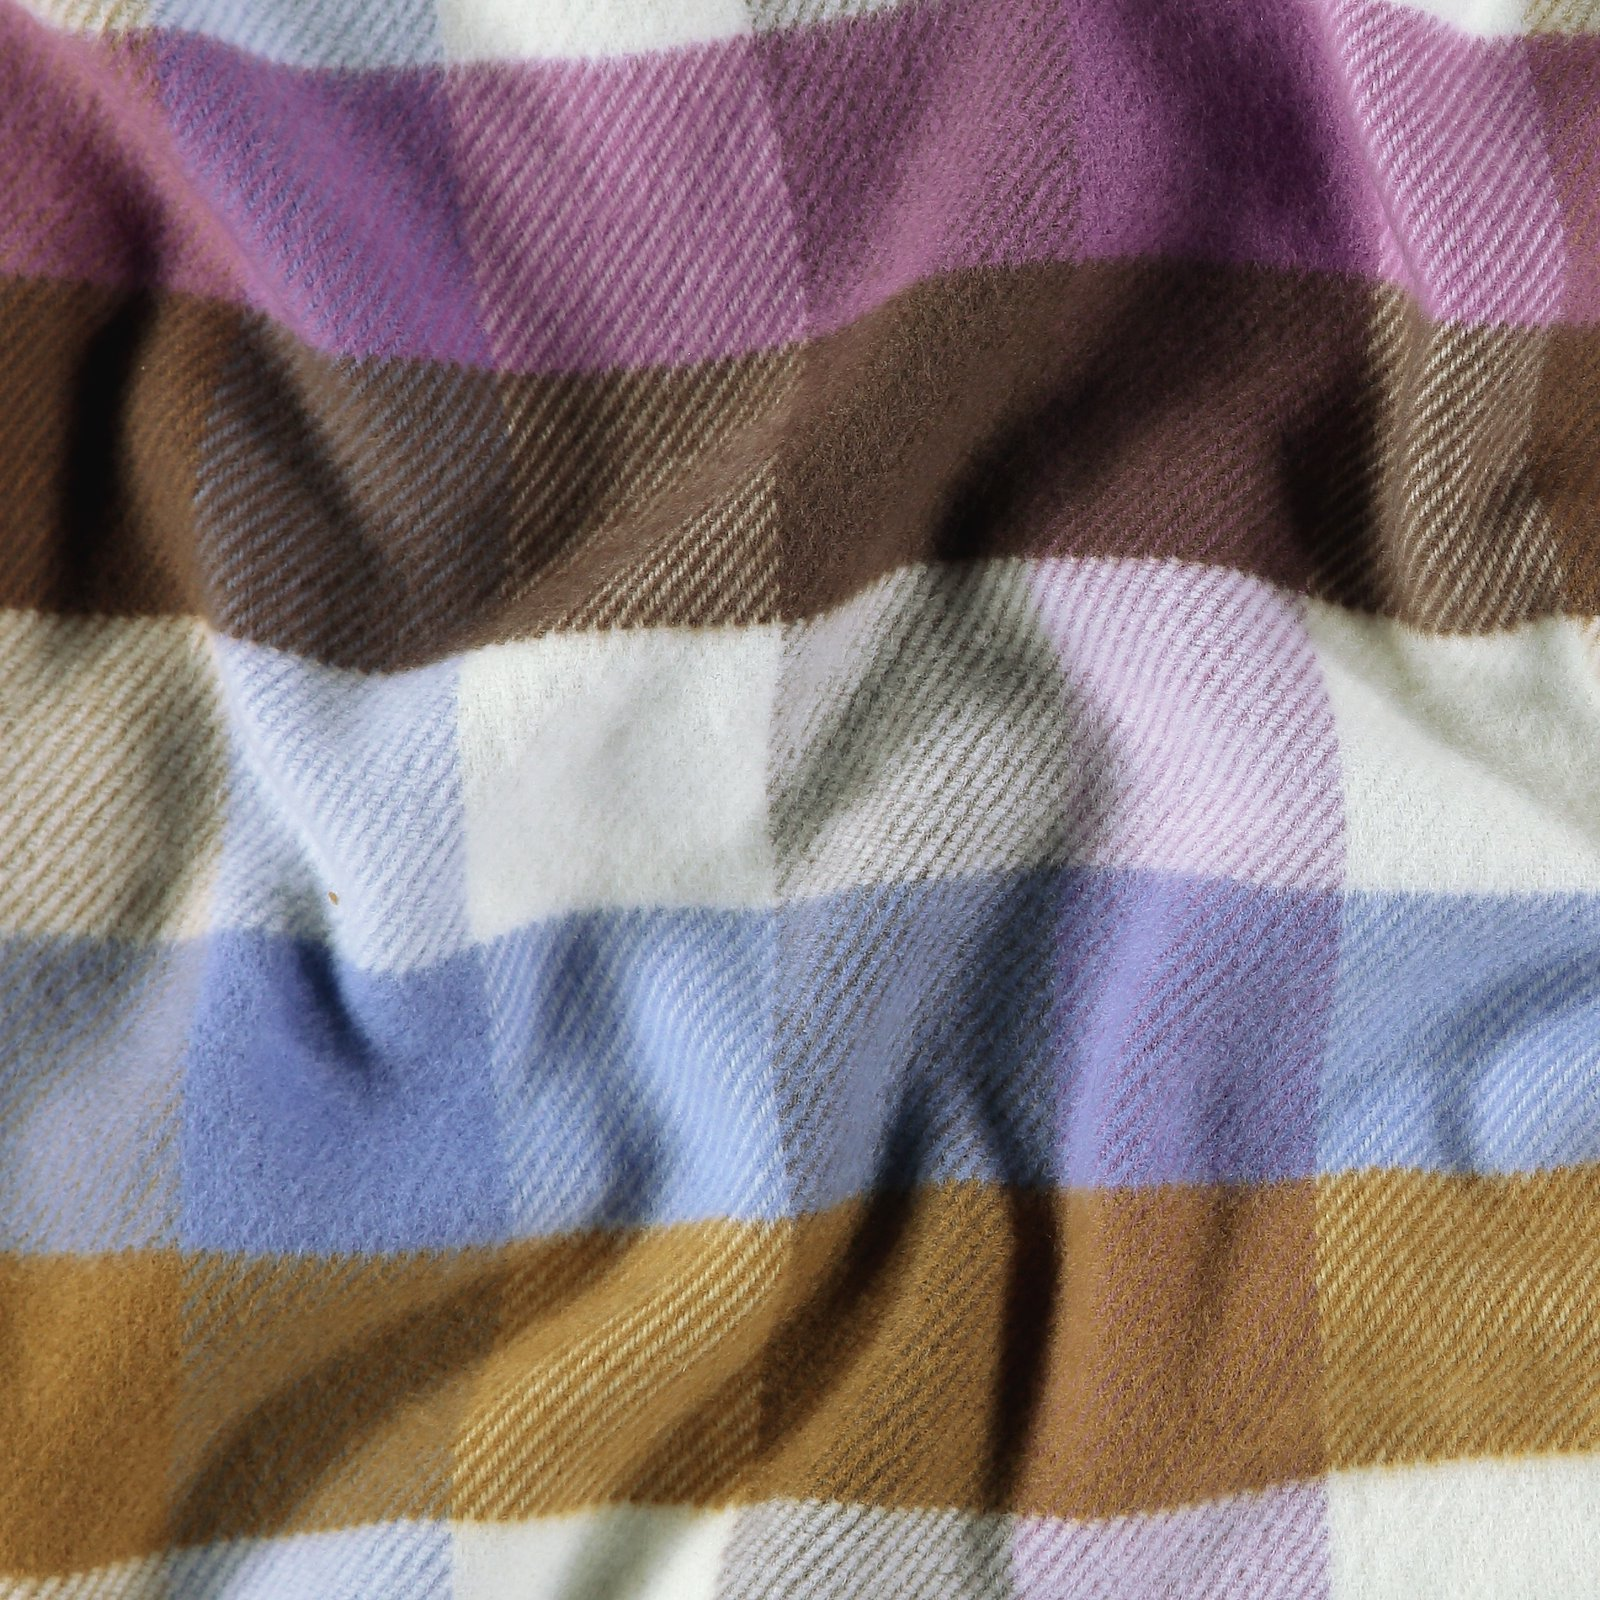 Woven YD check purple brushed surface